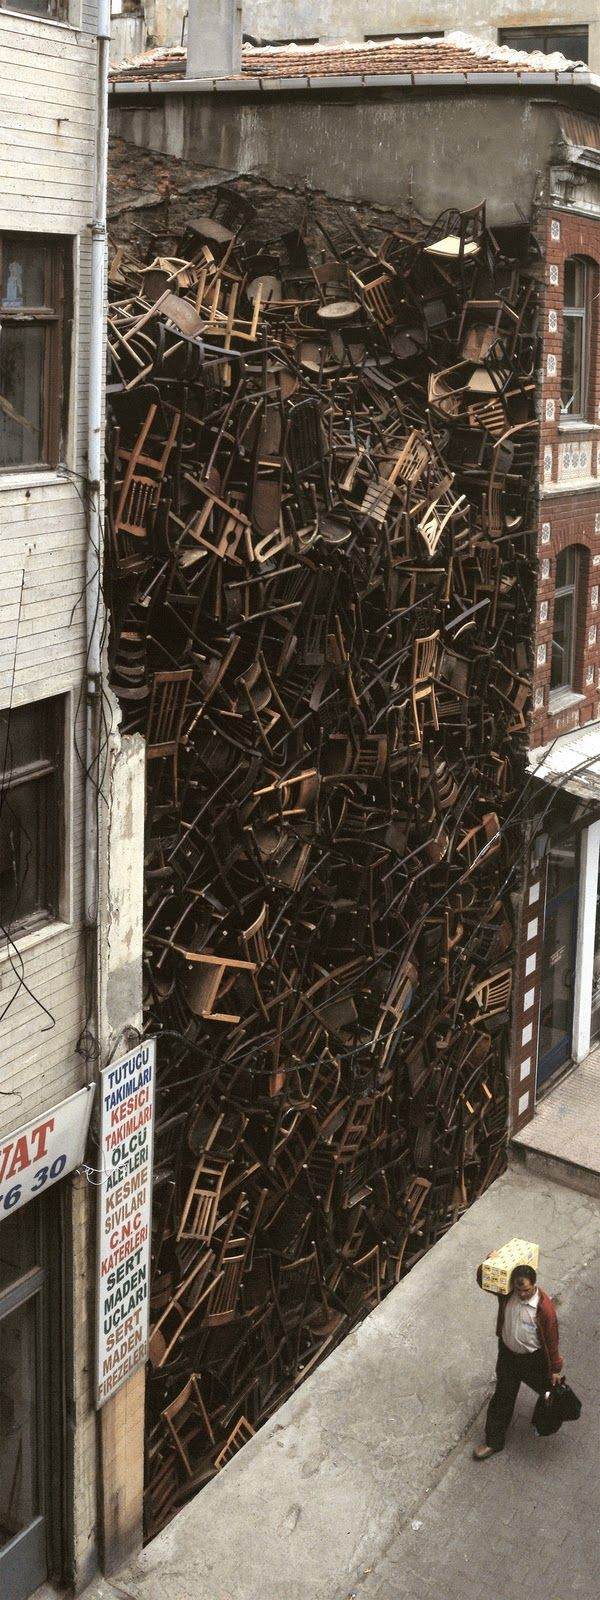 STORE FRONT WINDOWS: Doris Salcedo : Topography of War